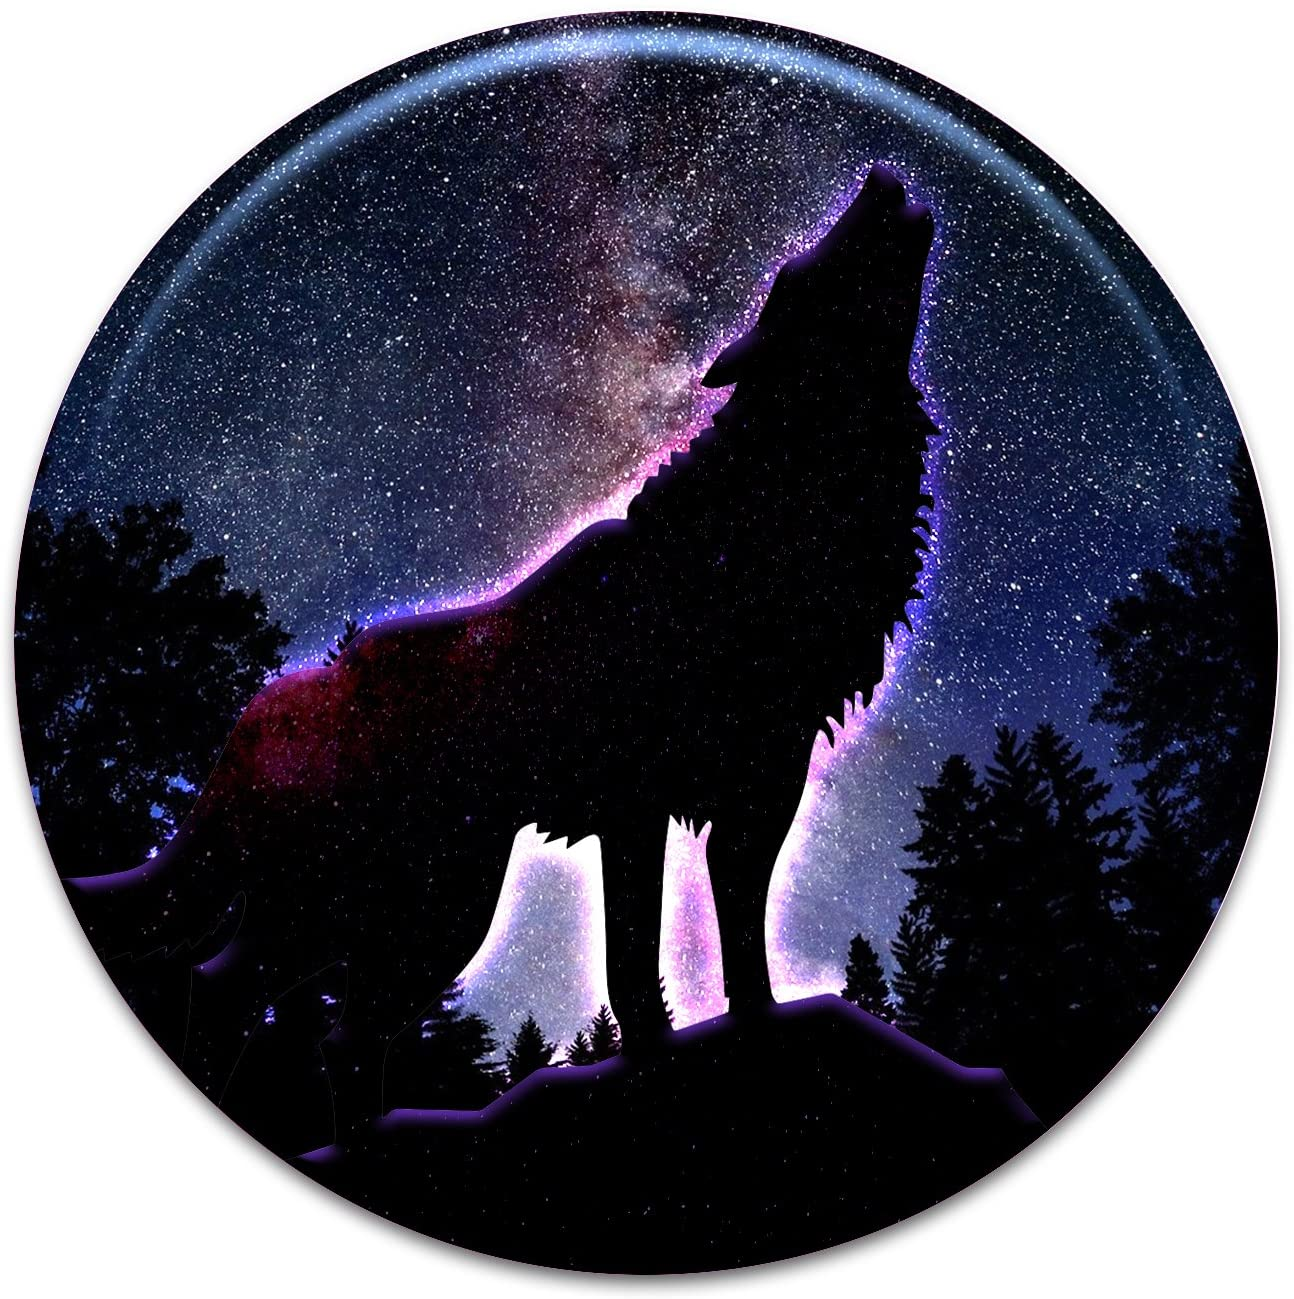 2X Sticker Set - Howling Wolf Night Sky - for Phone Grip Stent Cell Phones Tablets (Stickers Only)